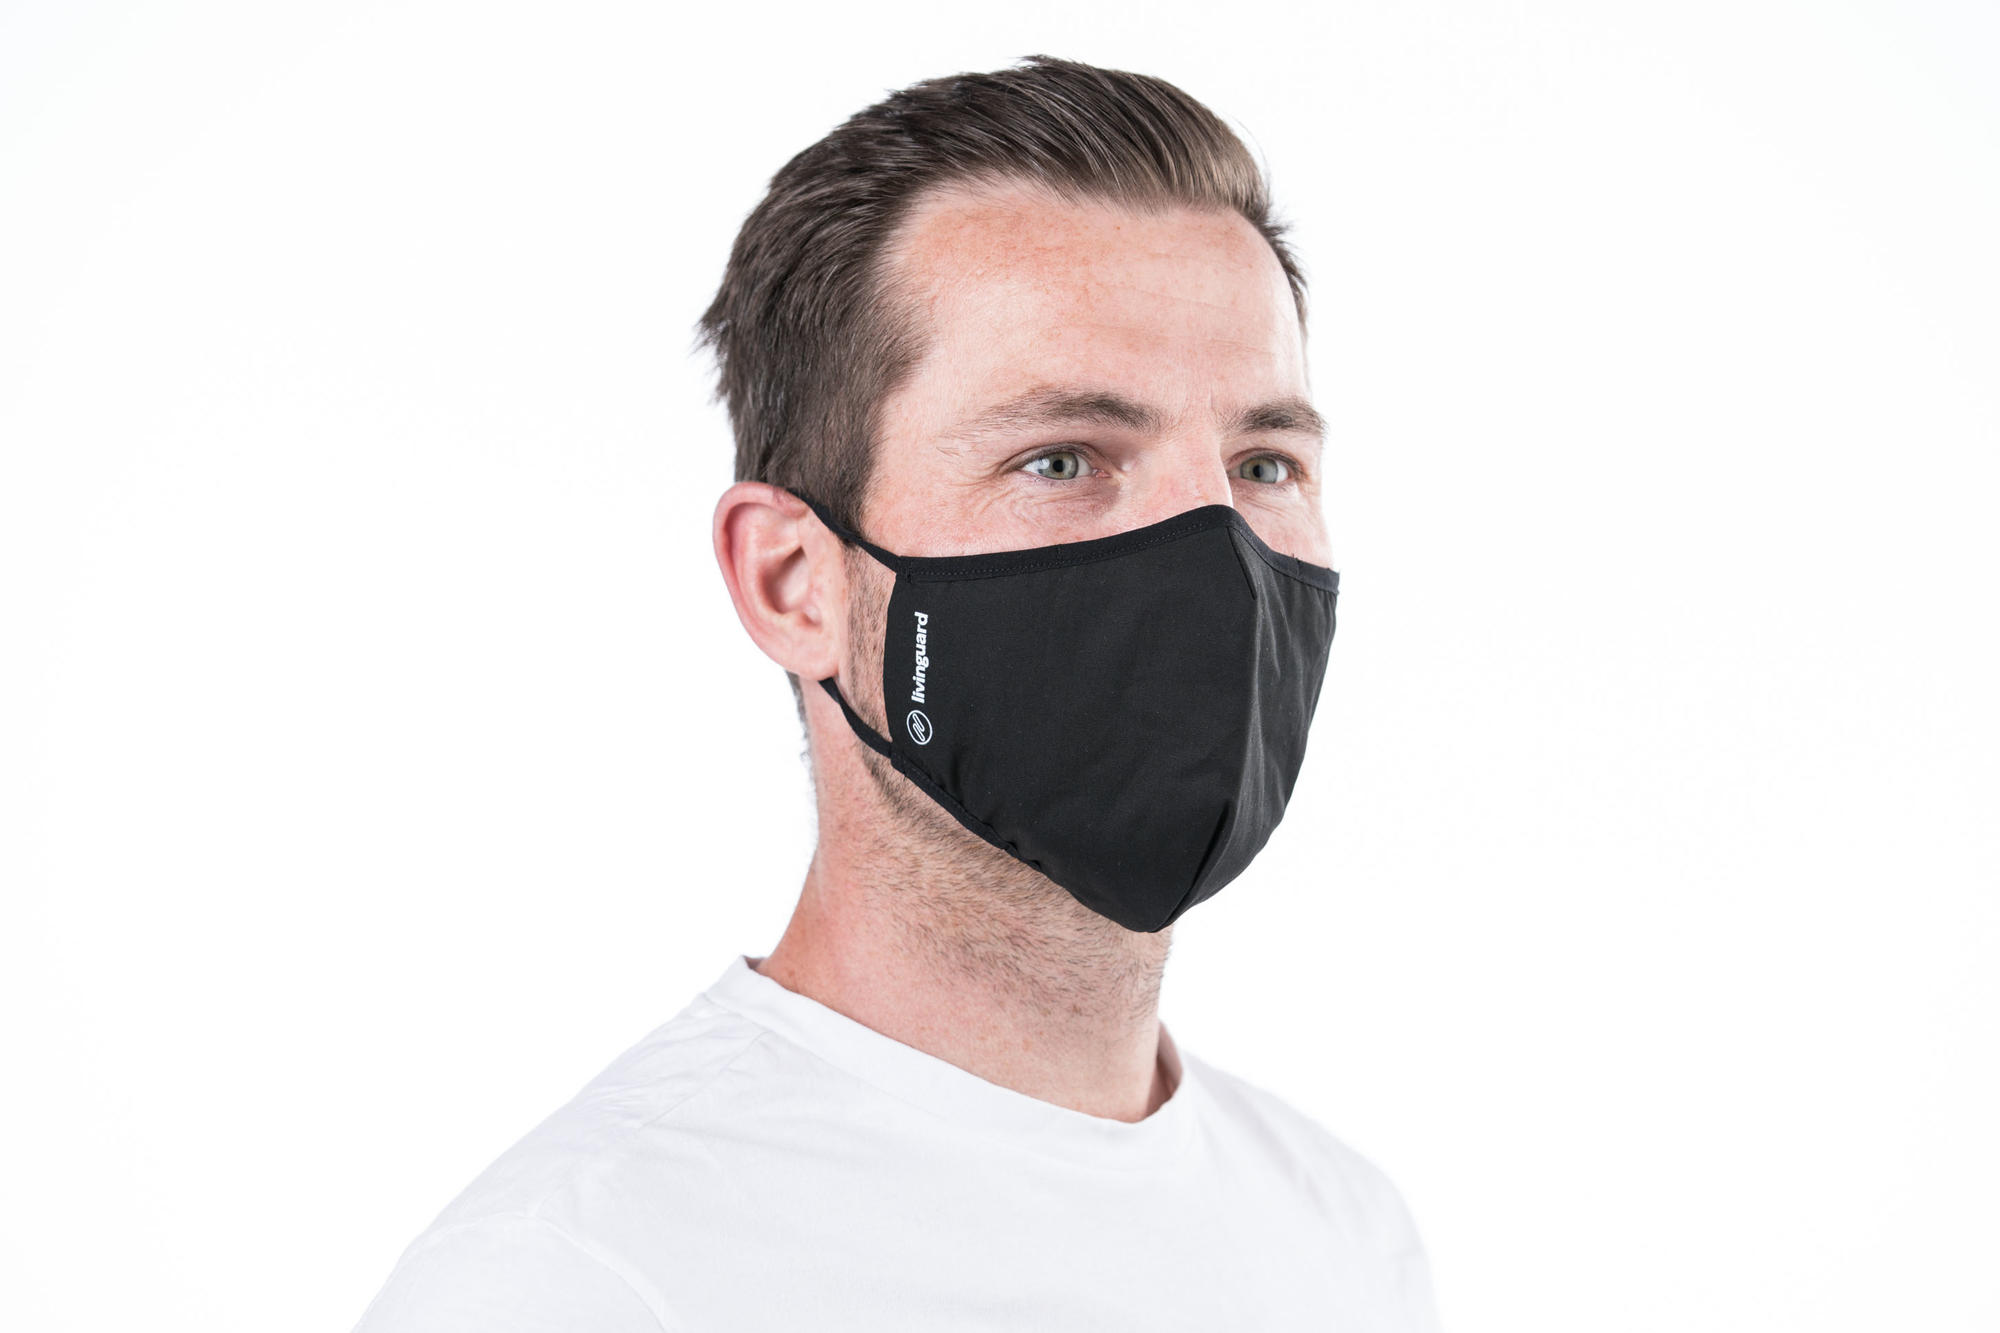 Man with face mask, source: Livinguard.